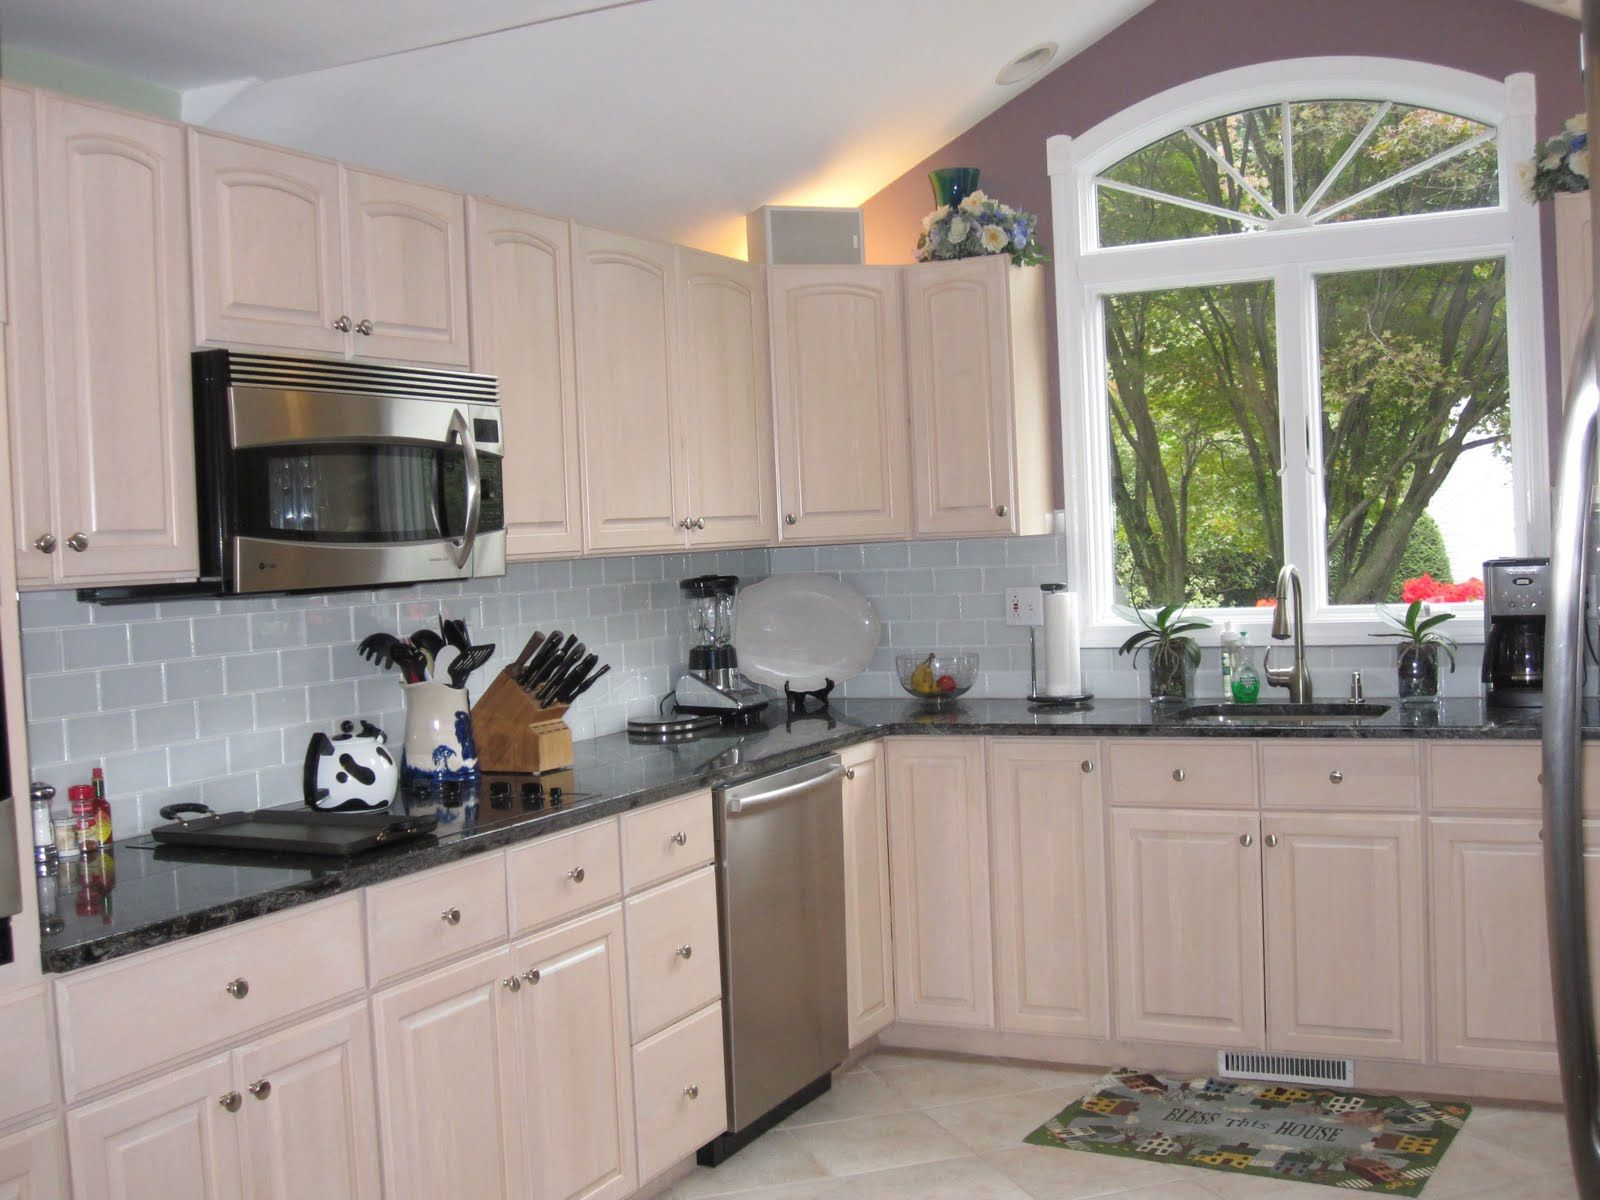 The Dark Granite Is Nice With The Pickled Cabinets.